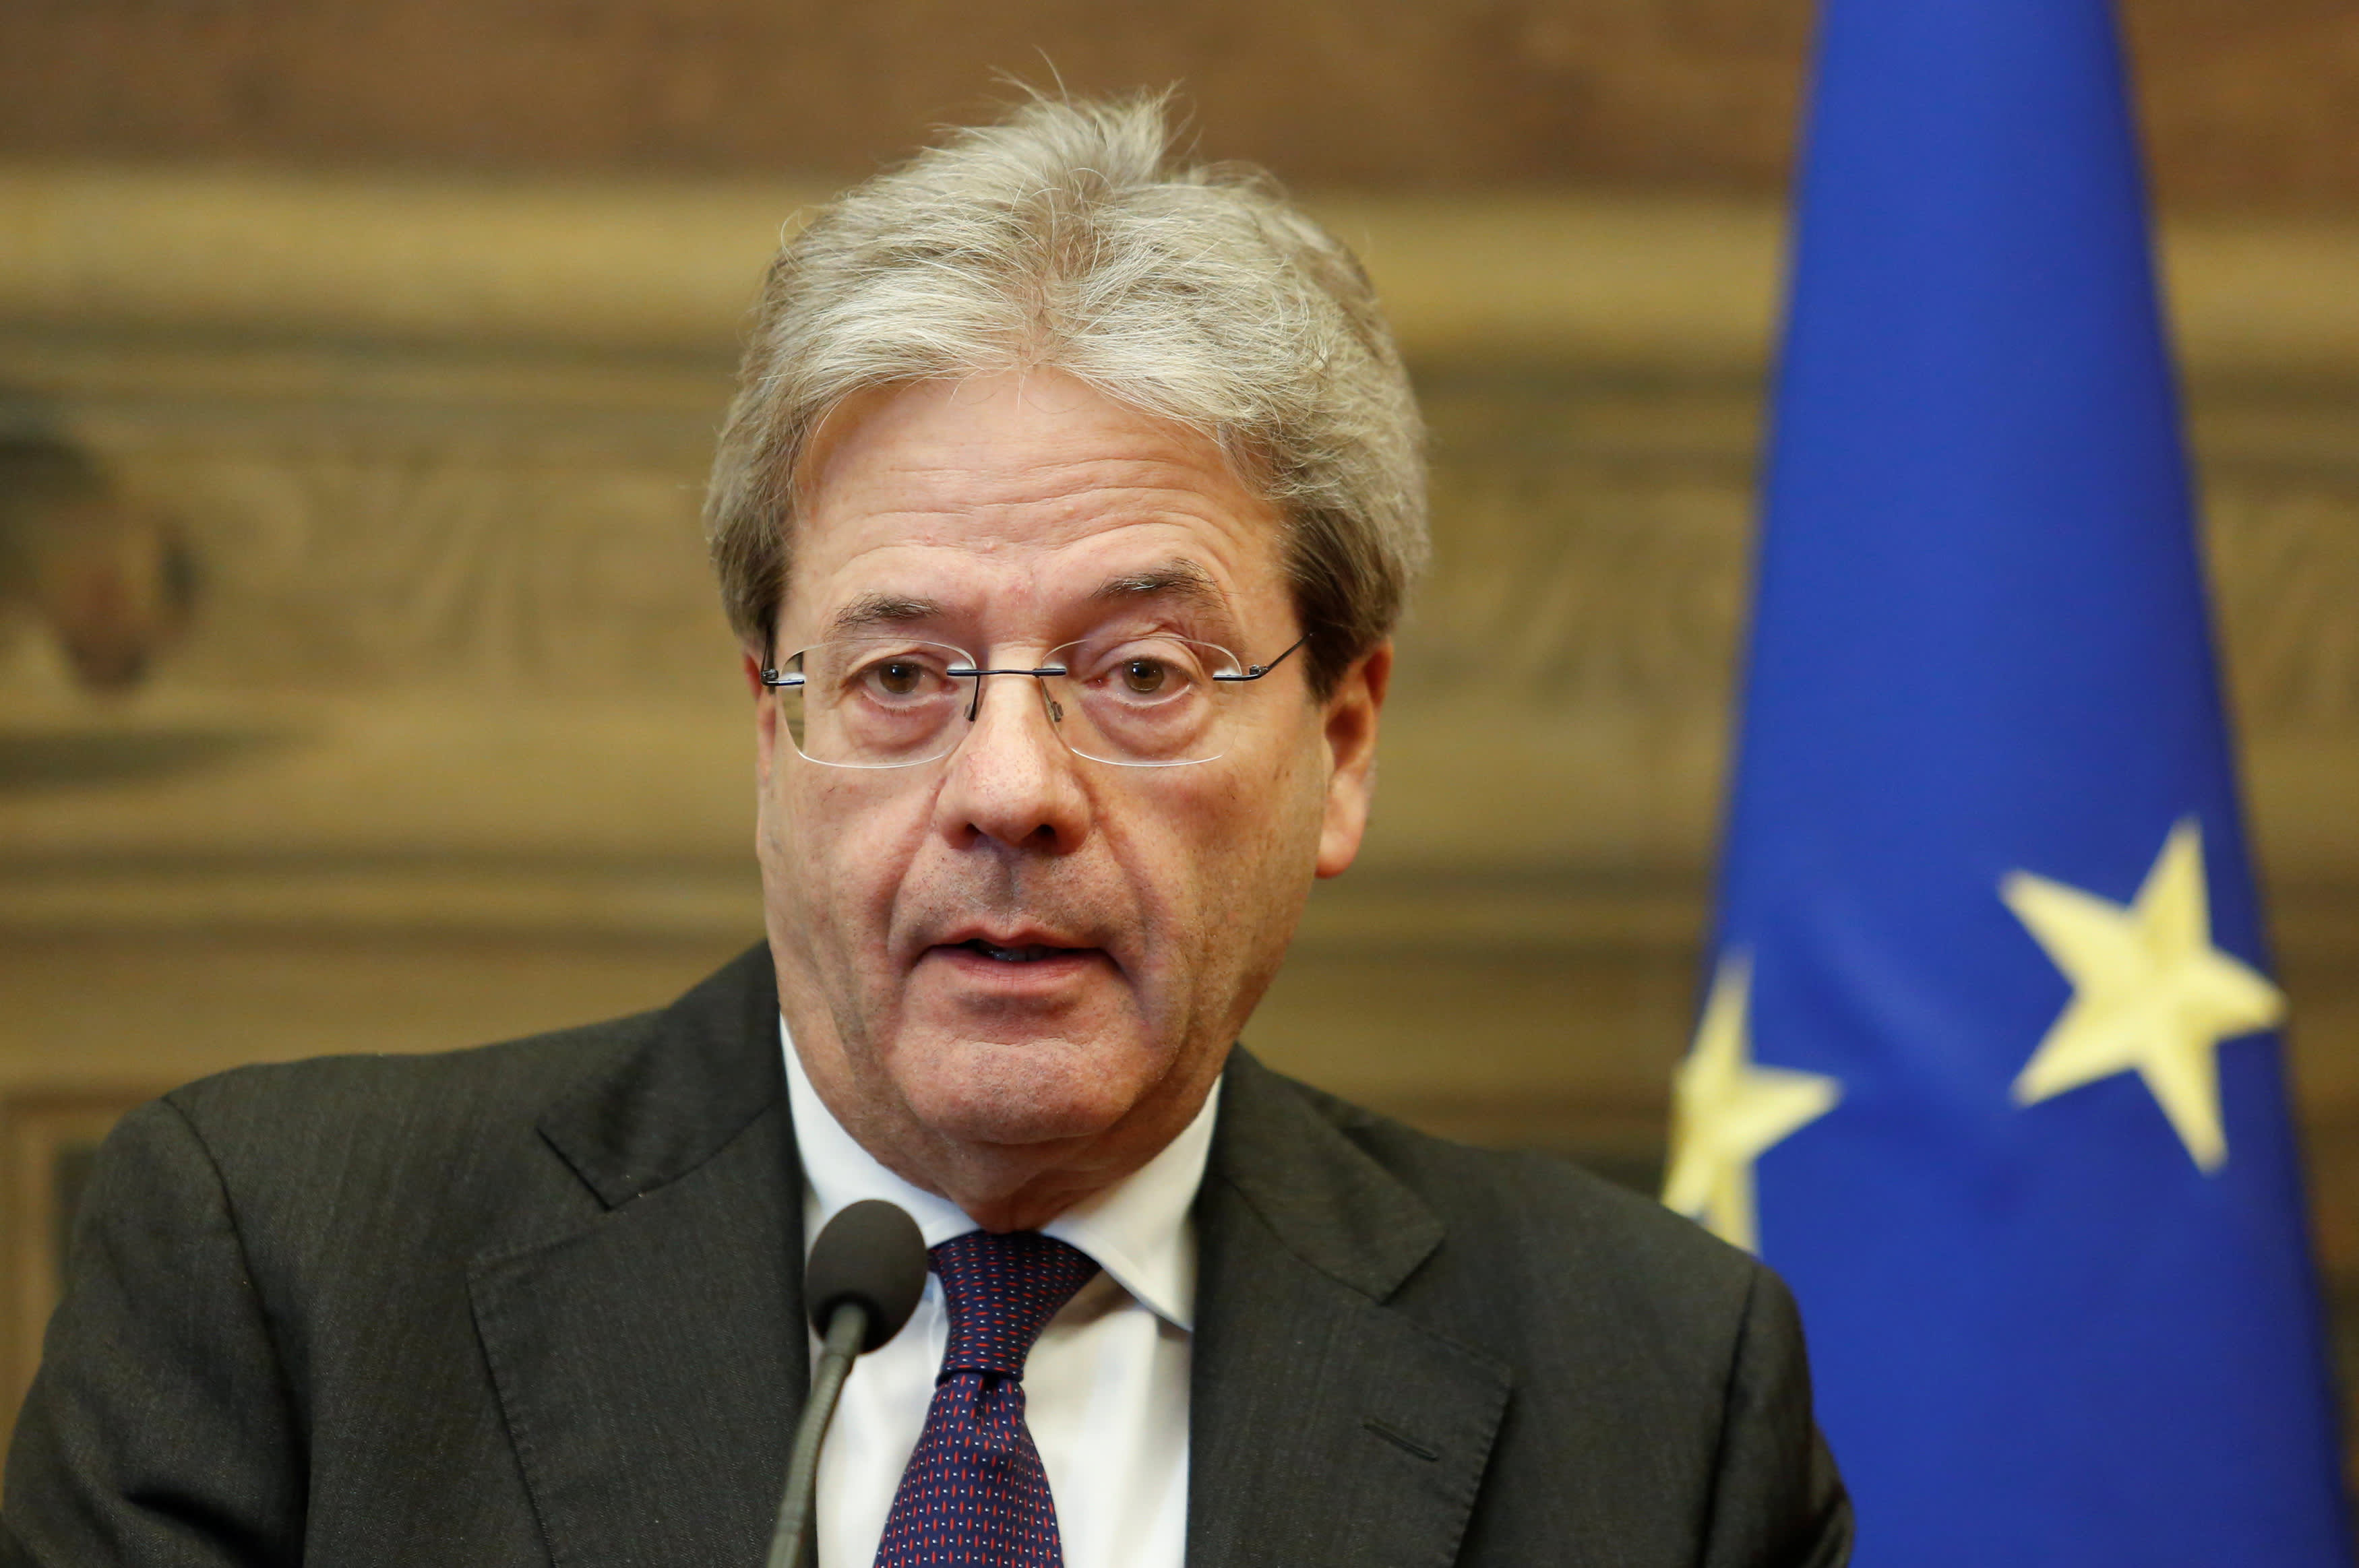 Italian Prime Minister-designate Paolo Gentiloni speaks to journalists at the end of a meeting in the Low Chamber in Rome, Italy December 12, 2016.